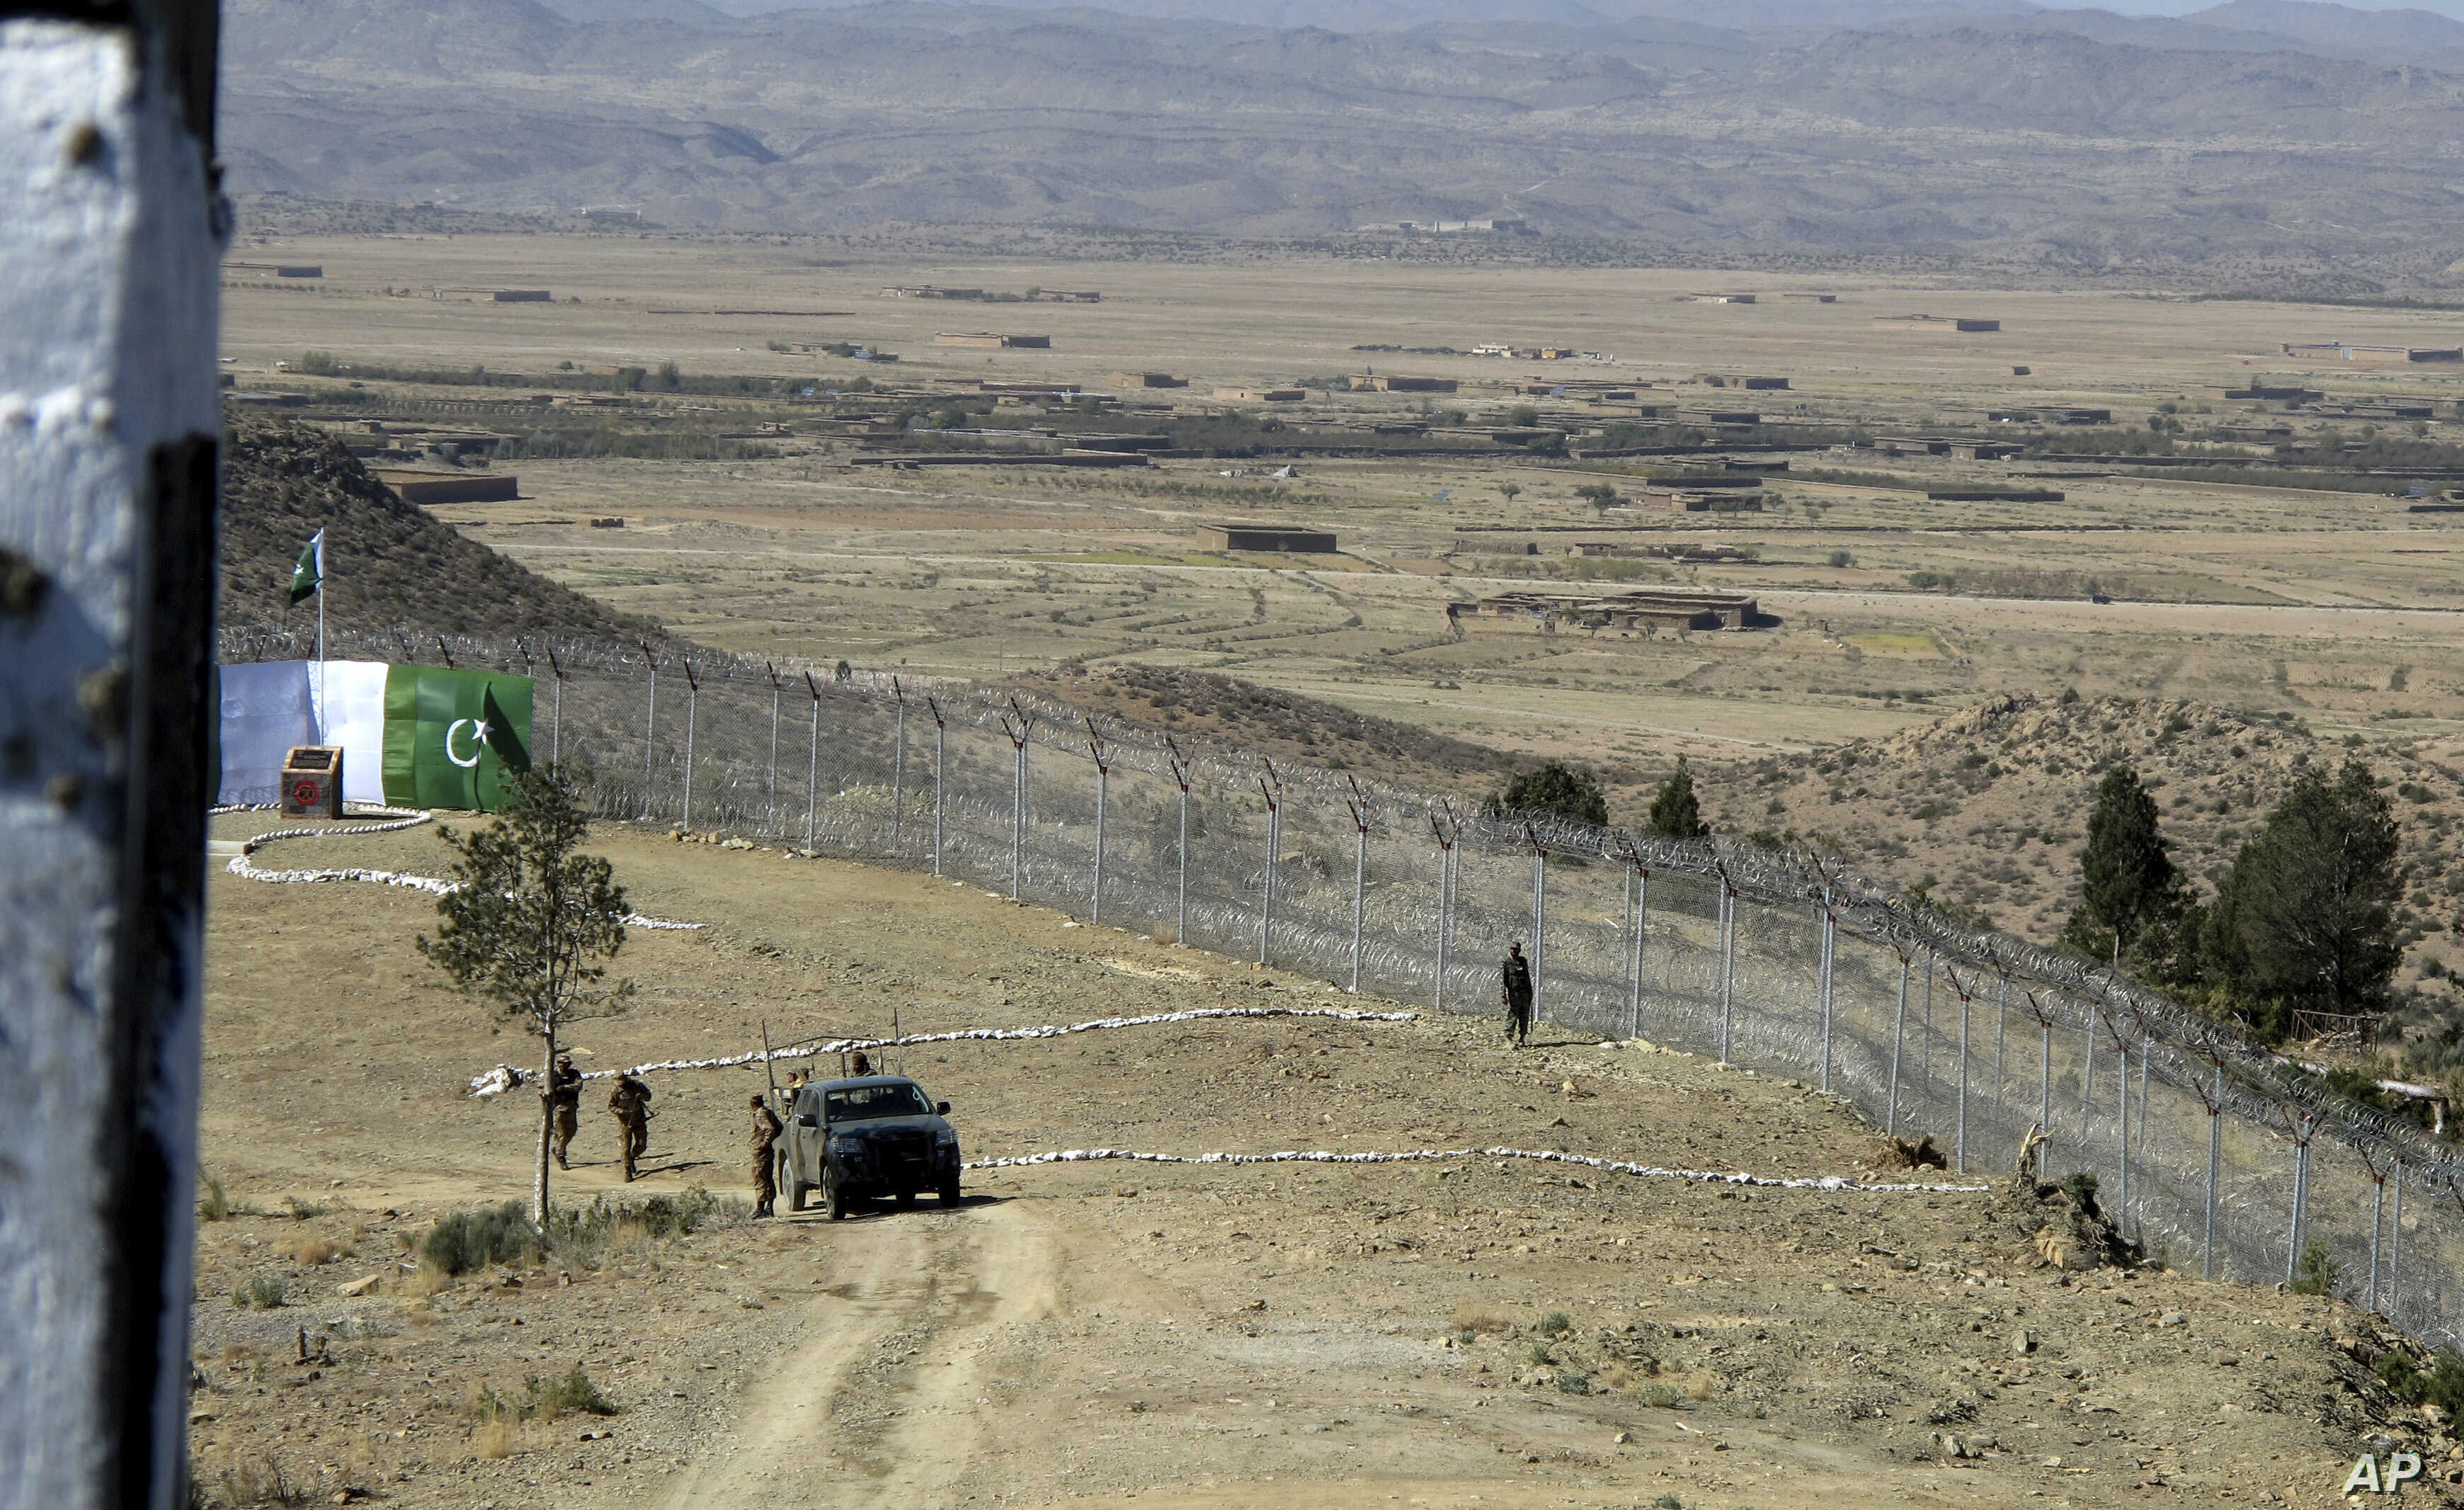 FILE - Pakistan's military says new fencing and guard posts along the border with Afghanistan will help prevent militant attacks, but the stepped-up fortifications have angered Kabul, which does not recognize the frontier as an international border.